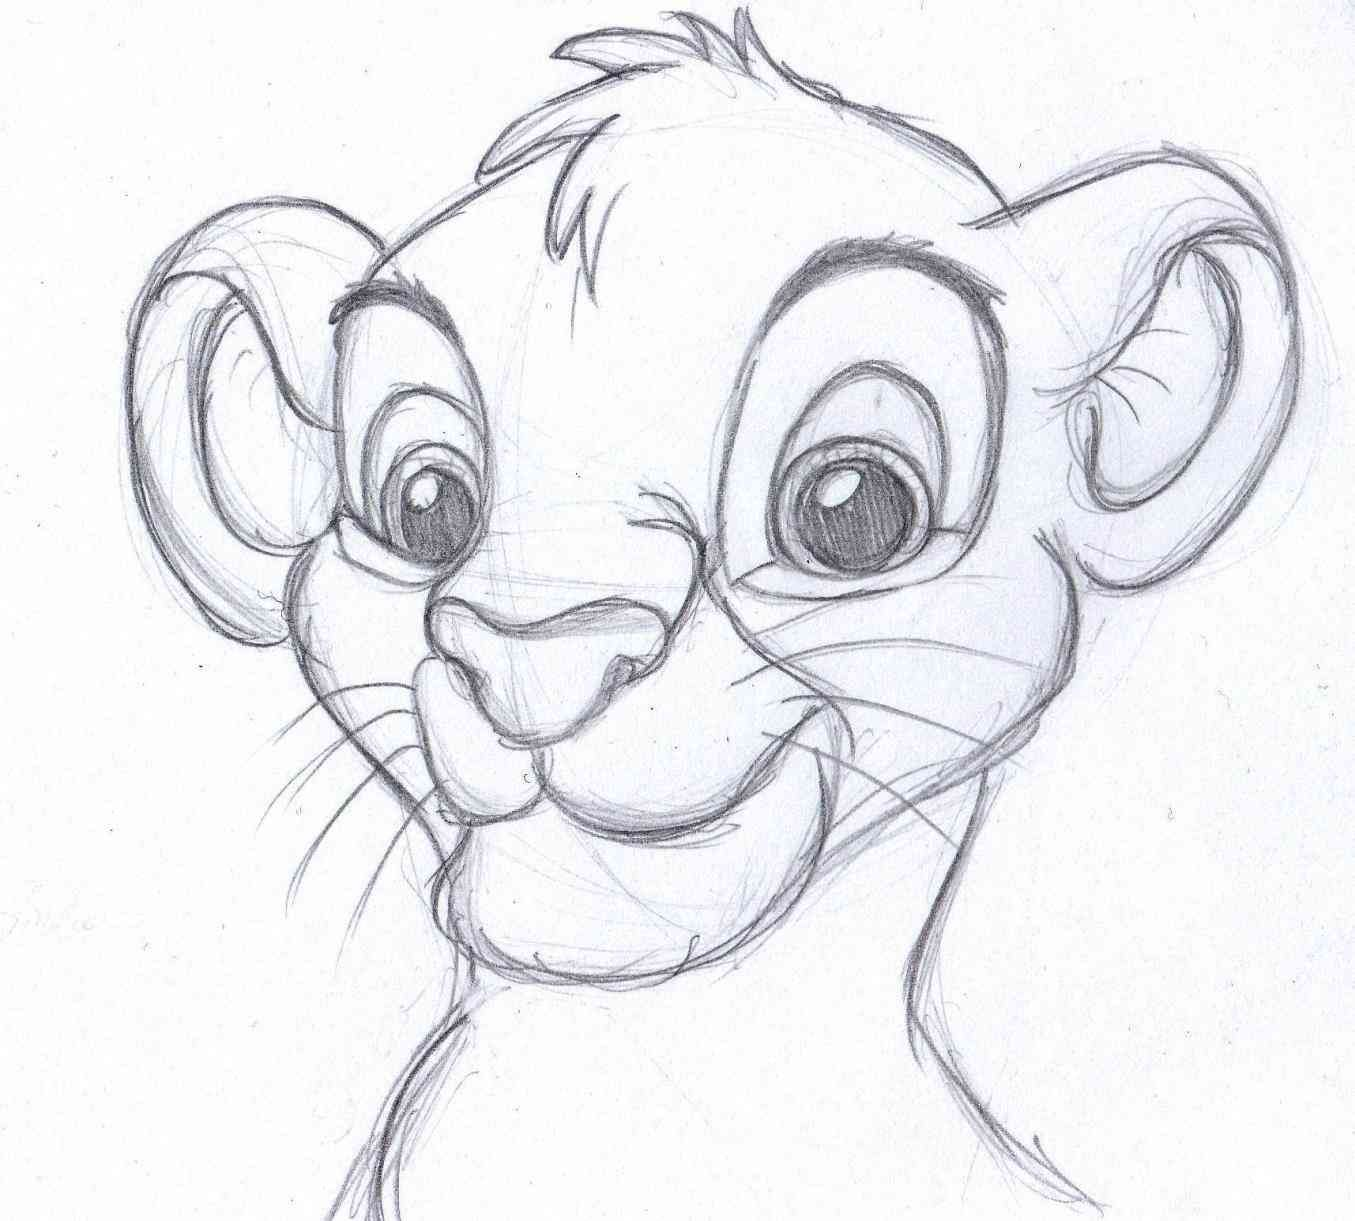 Pencil drawing images cartoons simple pencil drawings cartoon the lion king one of my favorite